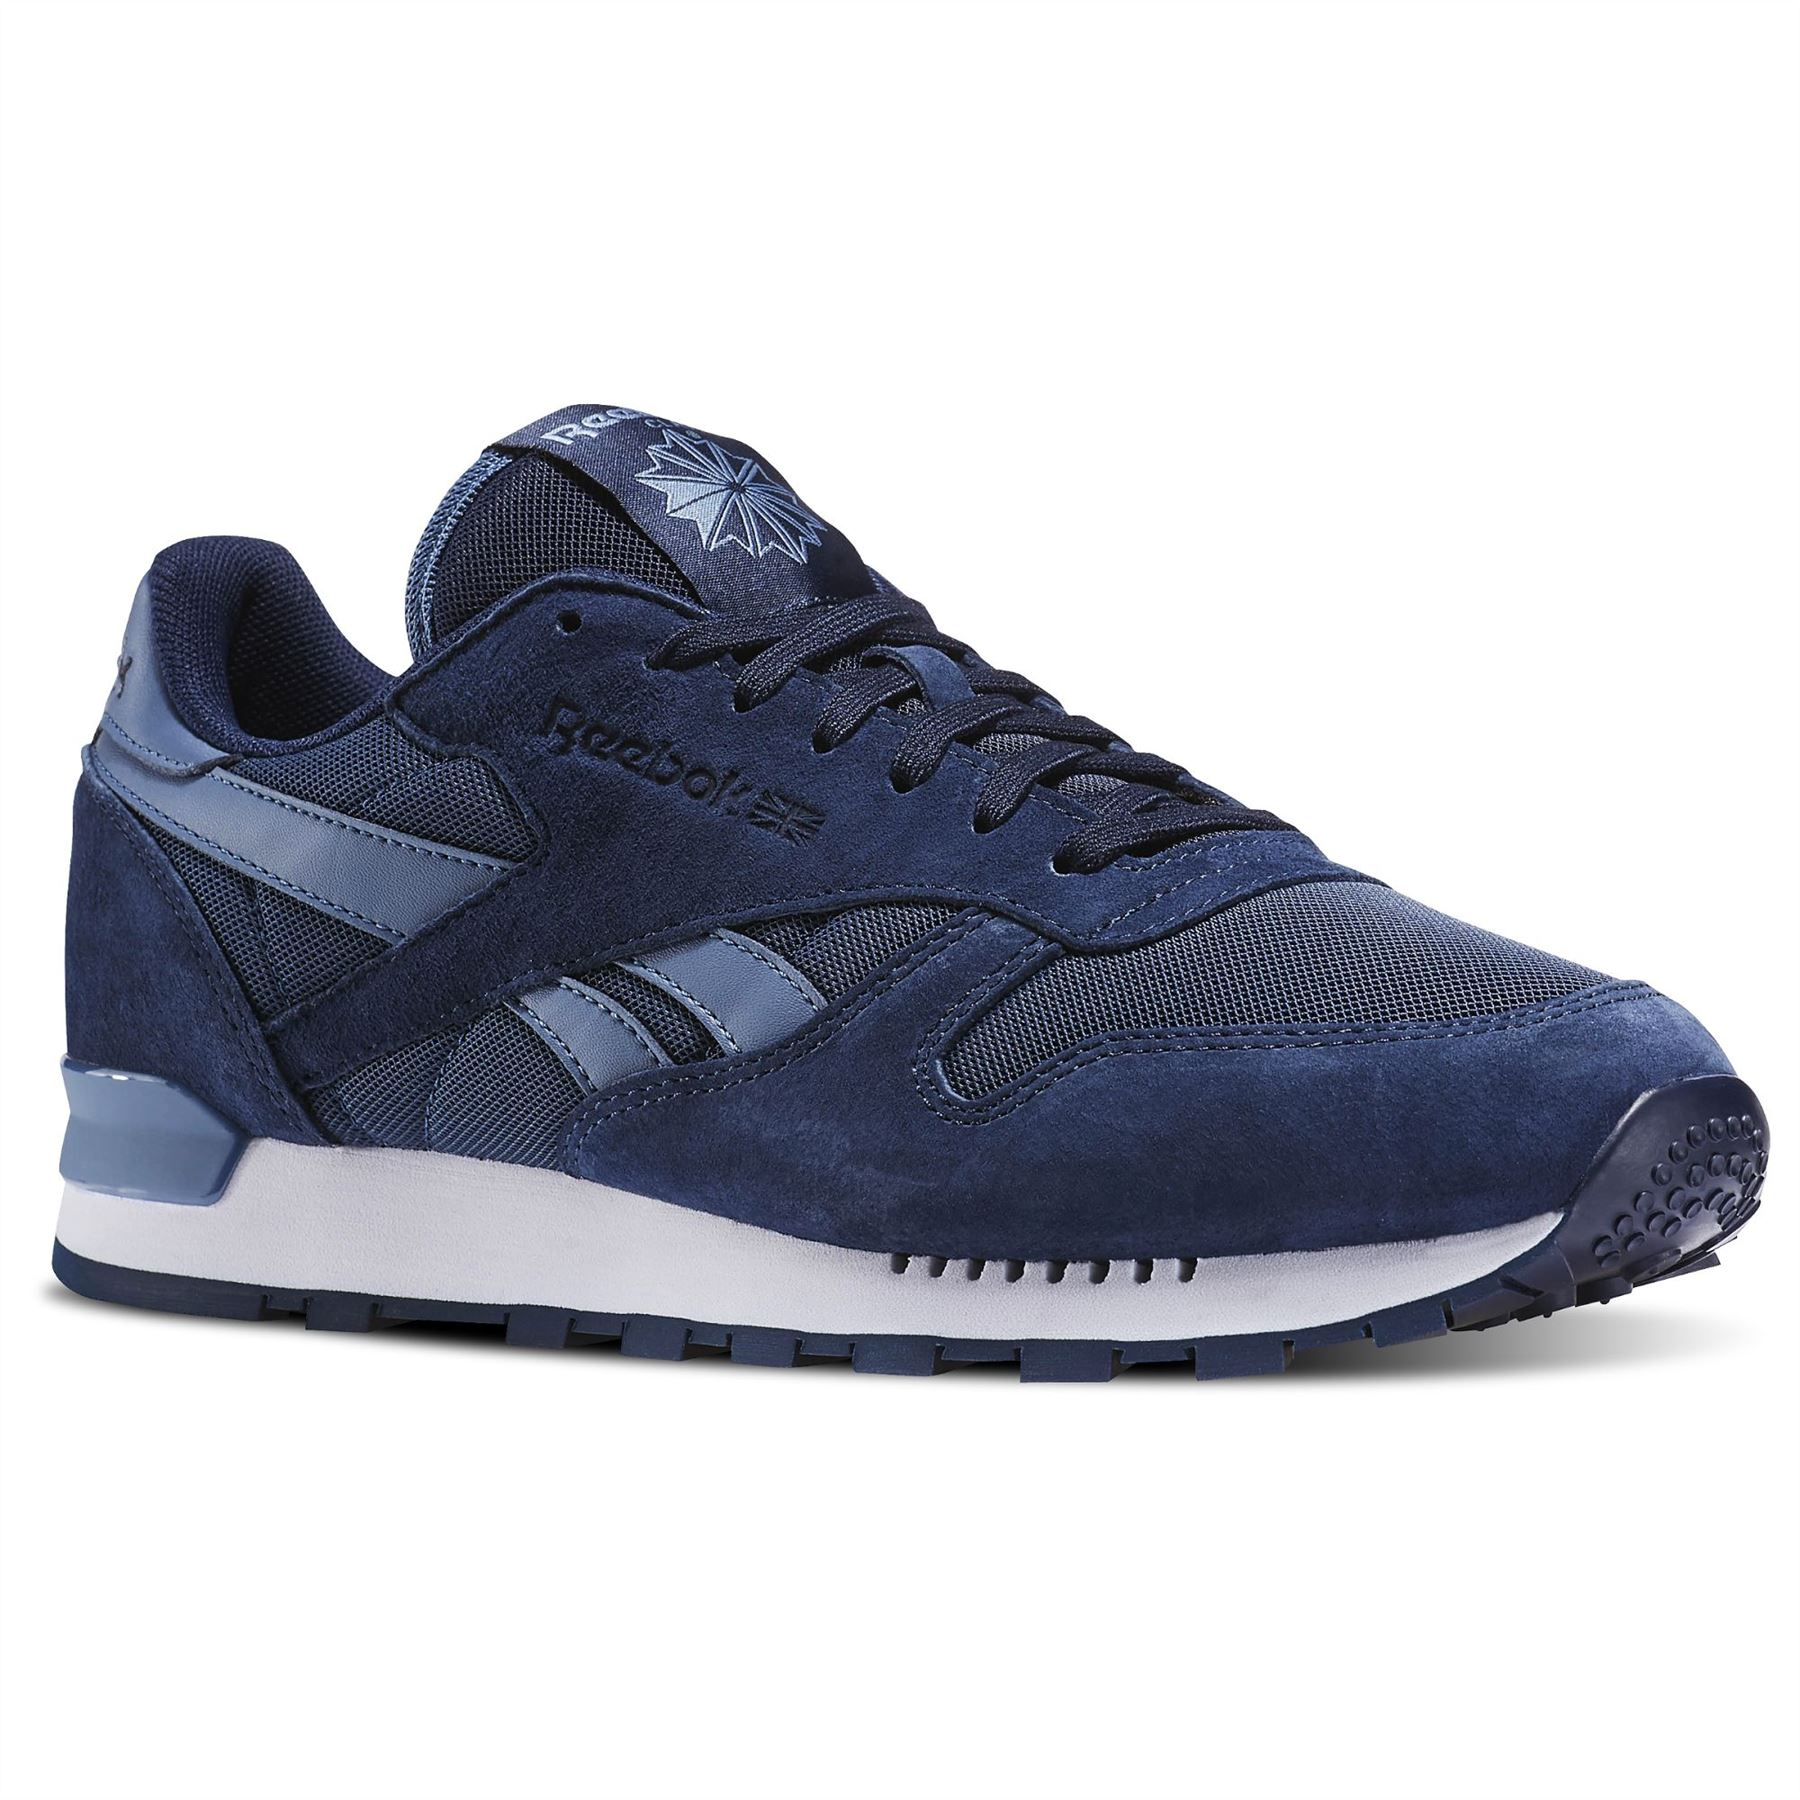 106d6ab2748 ... Reebok Classic Leather Clip Elements Trainers Mens Sneakers Shoes  Footwear ...